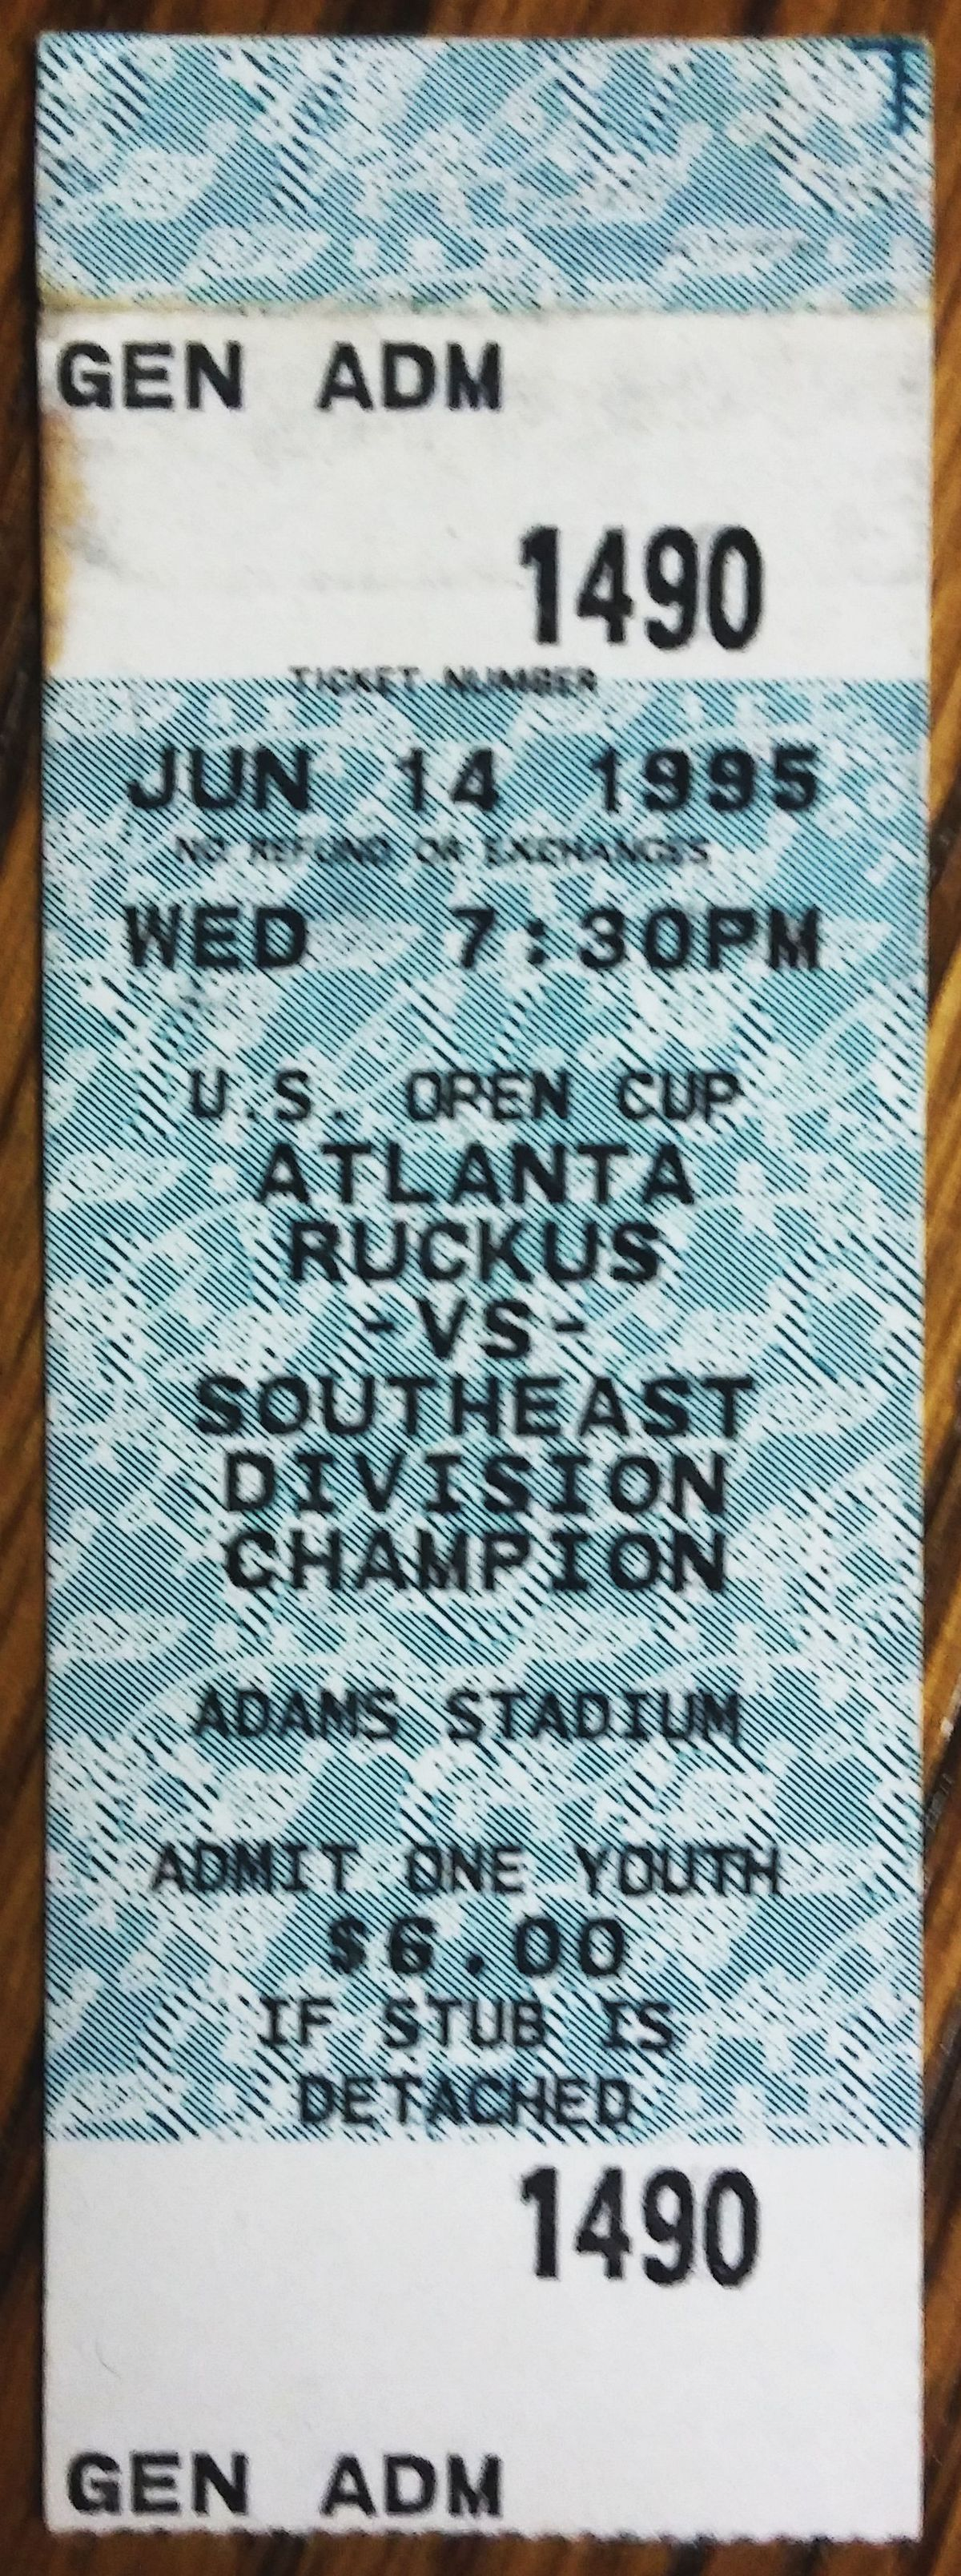 Ruckus ticket stub from US Open Cup match